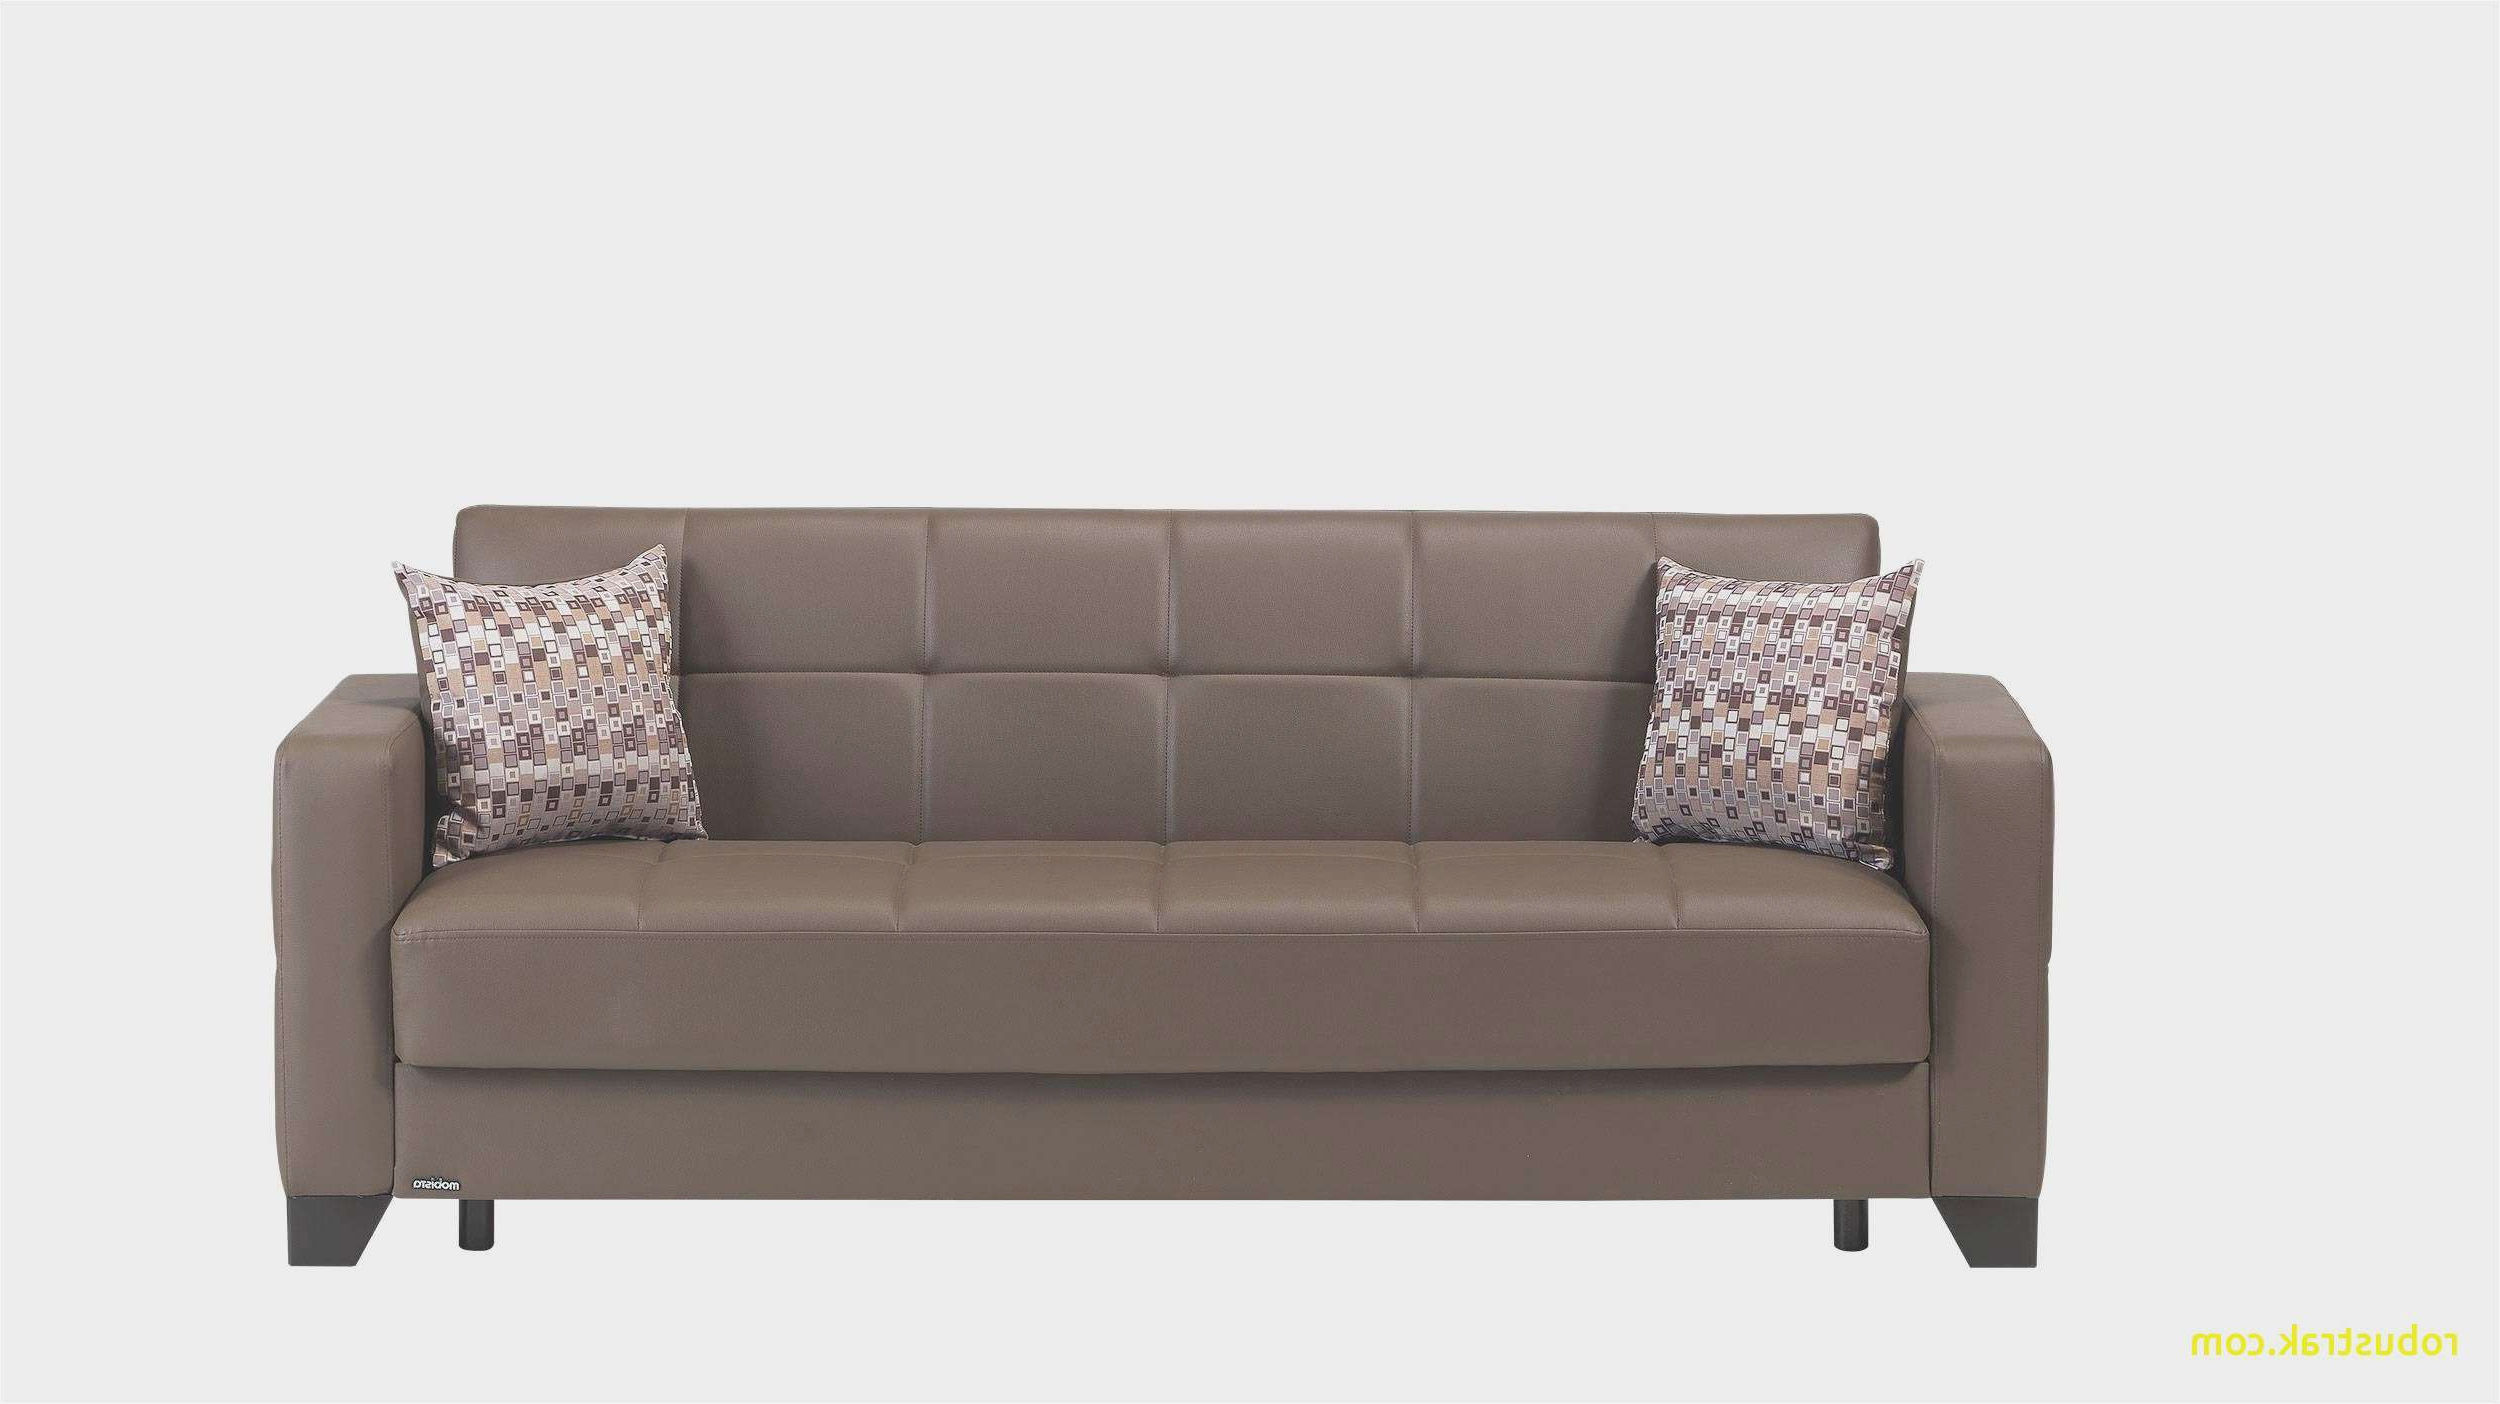 Favorite Fresh Sofa Mart Chairs Home Design Furniture Decorating Fantastical With Sofa Mart Chairs (View 4 of 20)